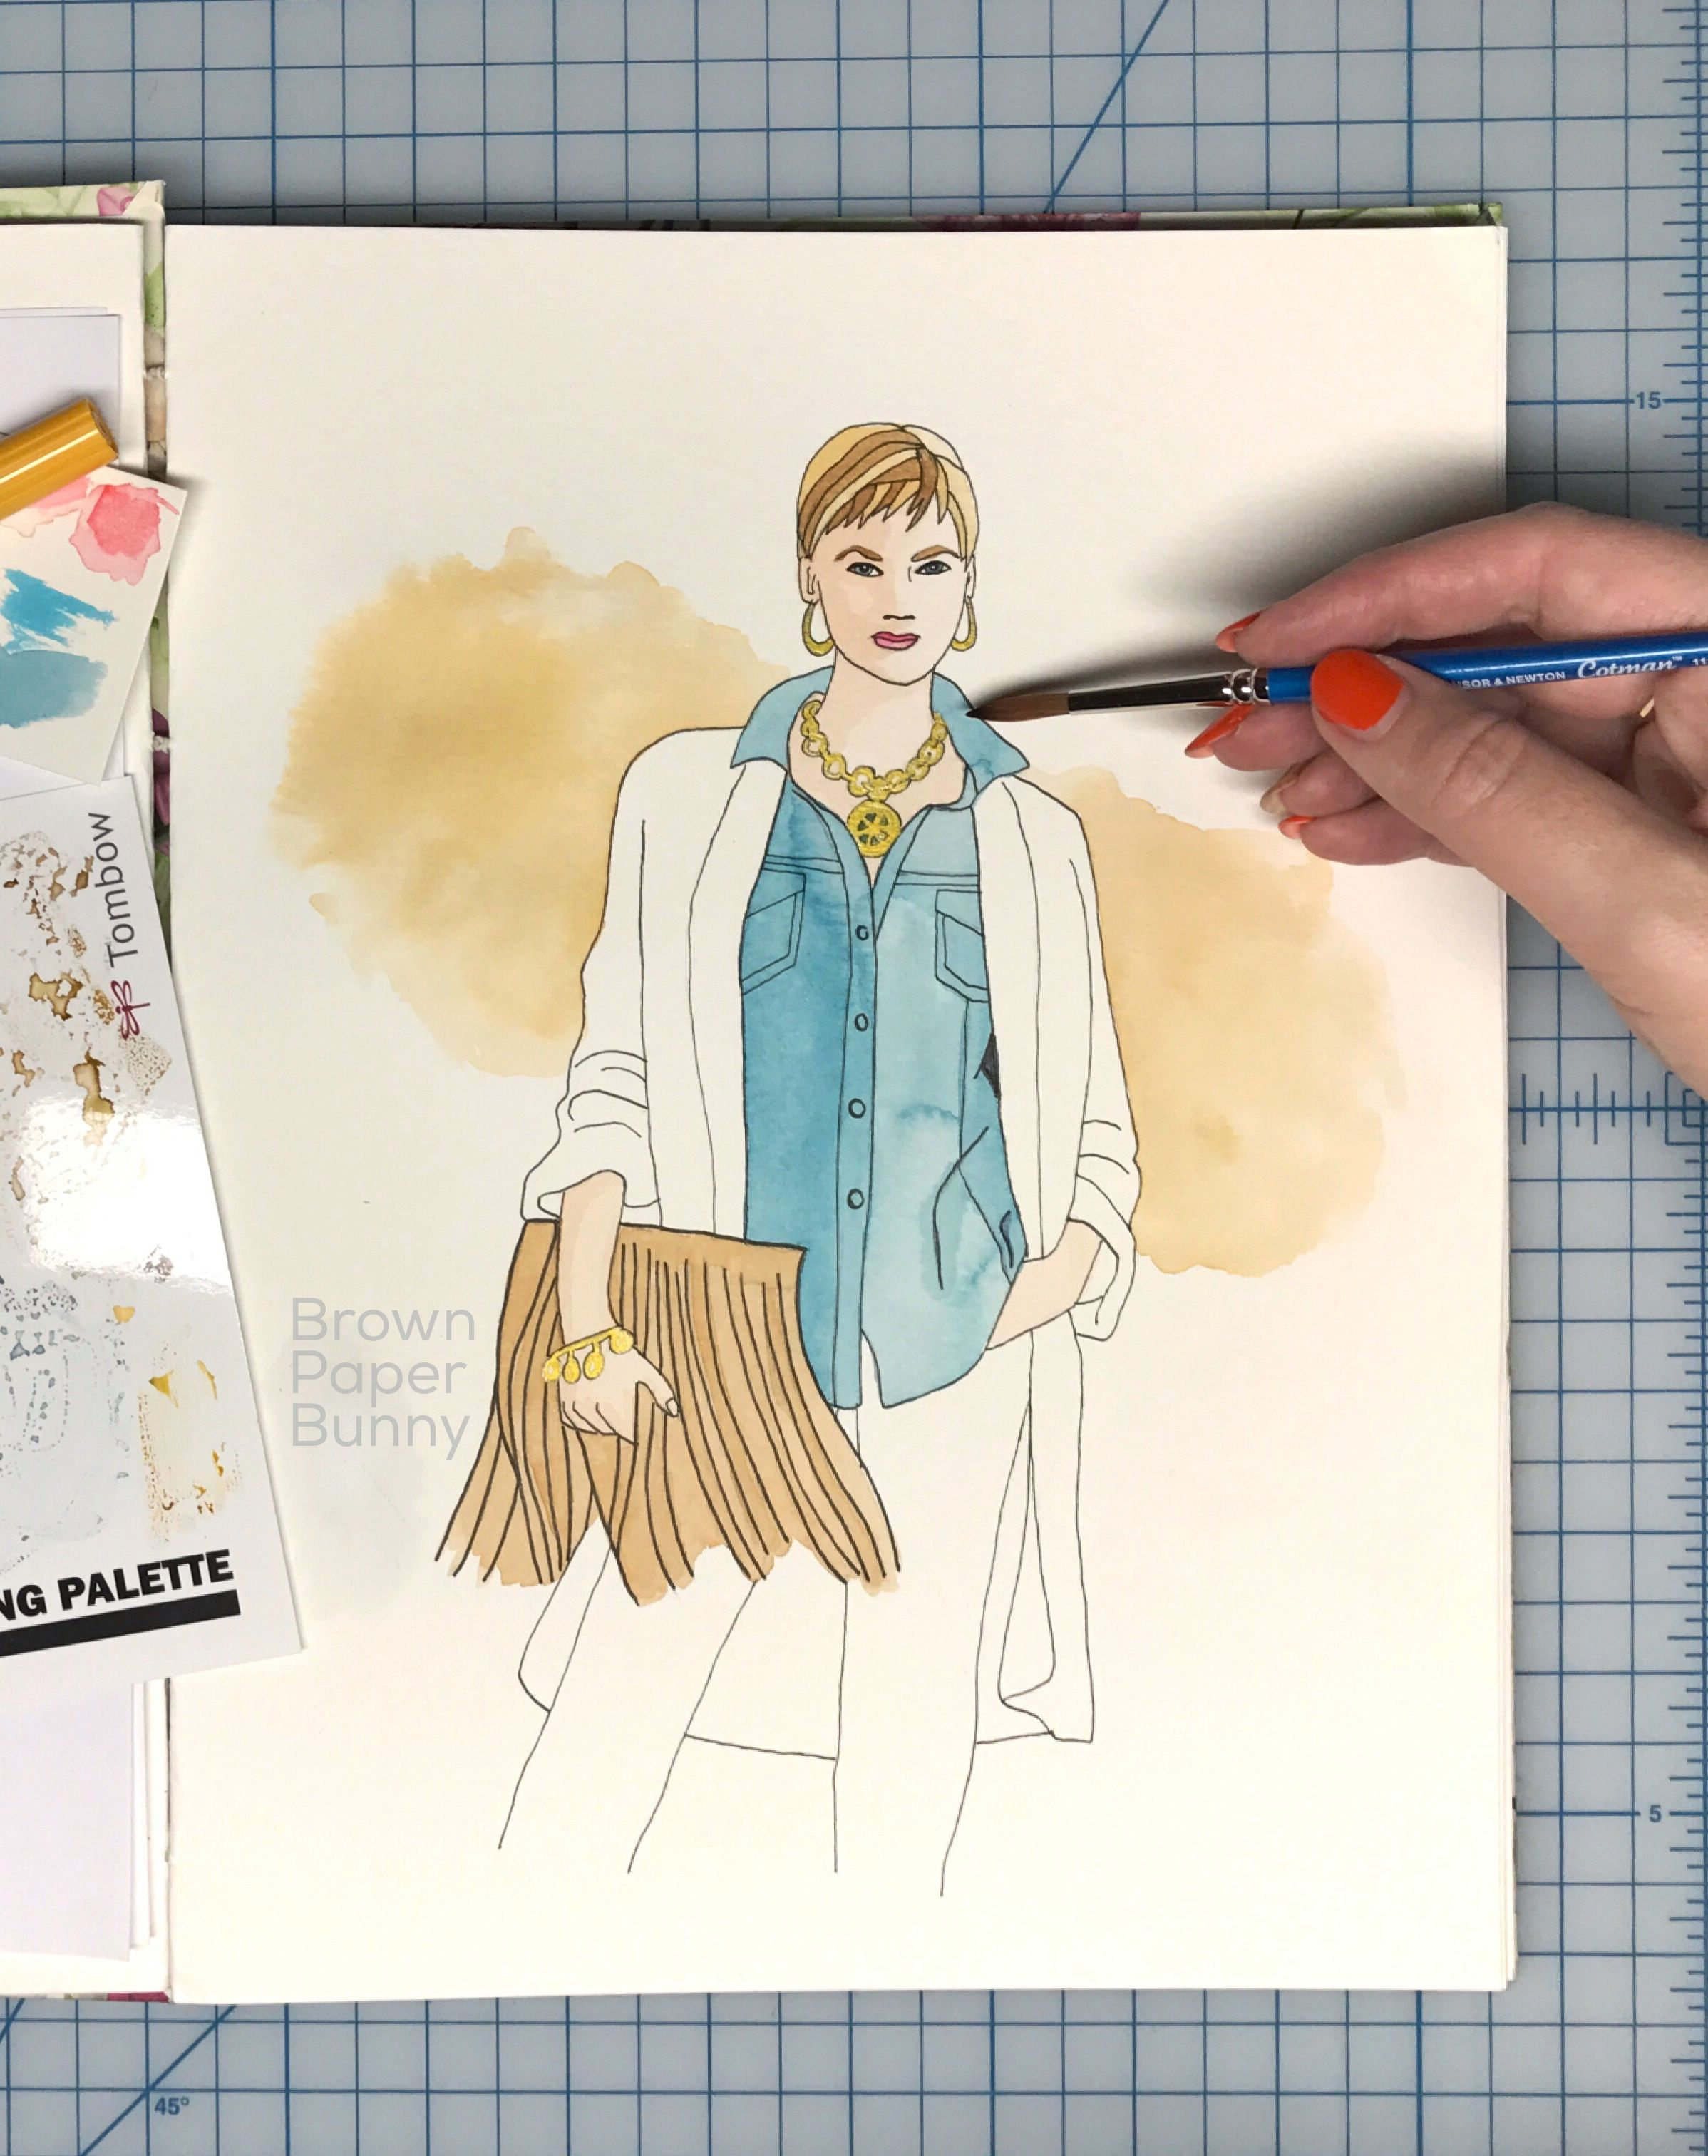 Day 18 of the Inktober Fall Fashion Illustration challenge is Chambray shirt. See more at http://www.brownpaperbunny.com/blog/inktober-day-18-chambray